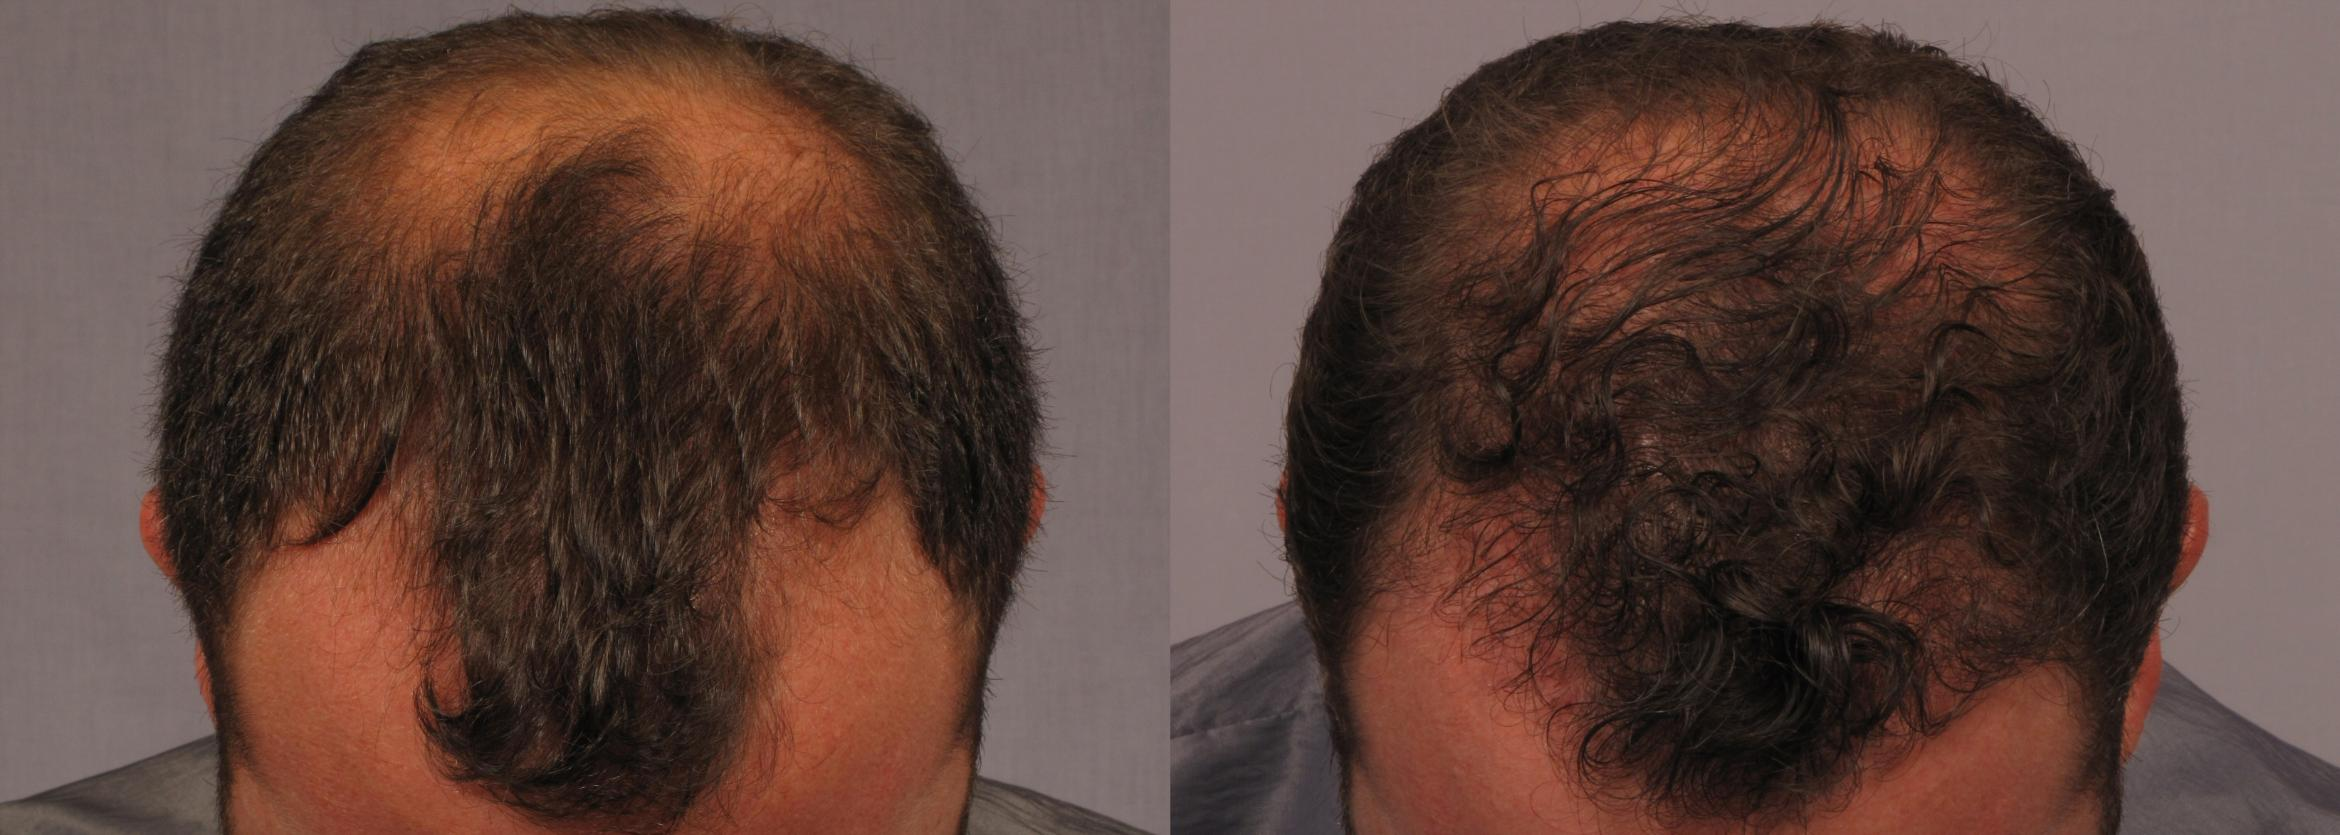 NeoGraft Hair Transplant Case 298 Before & After View #1 | Naples, FL | Kent V. Hasen, M.D.